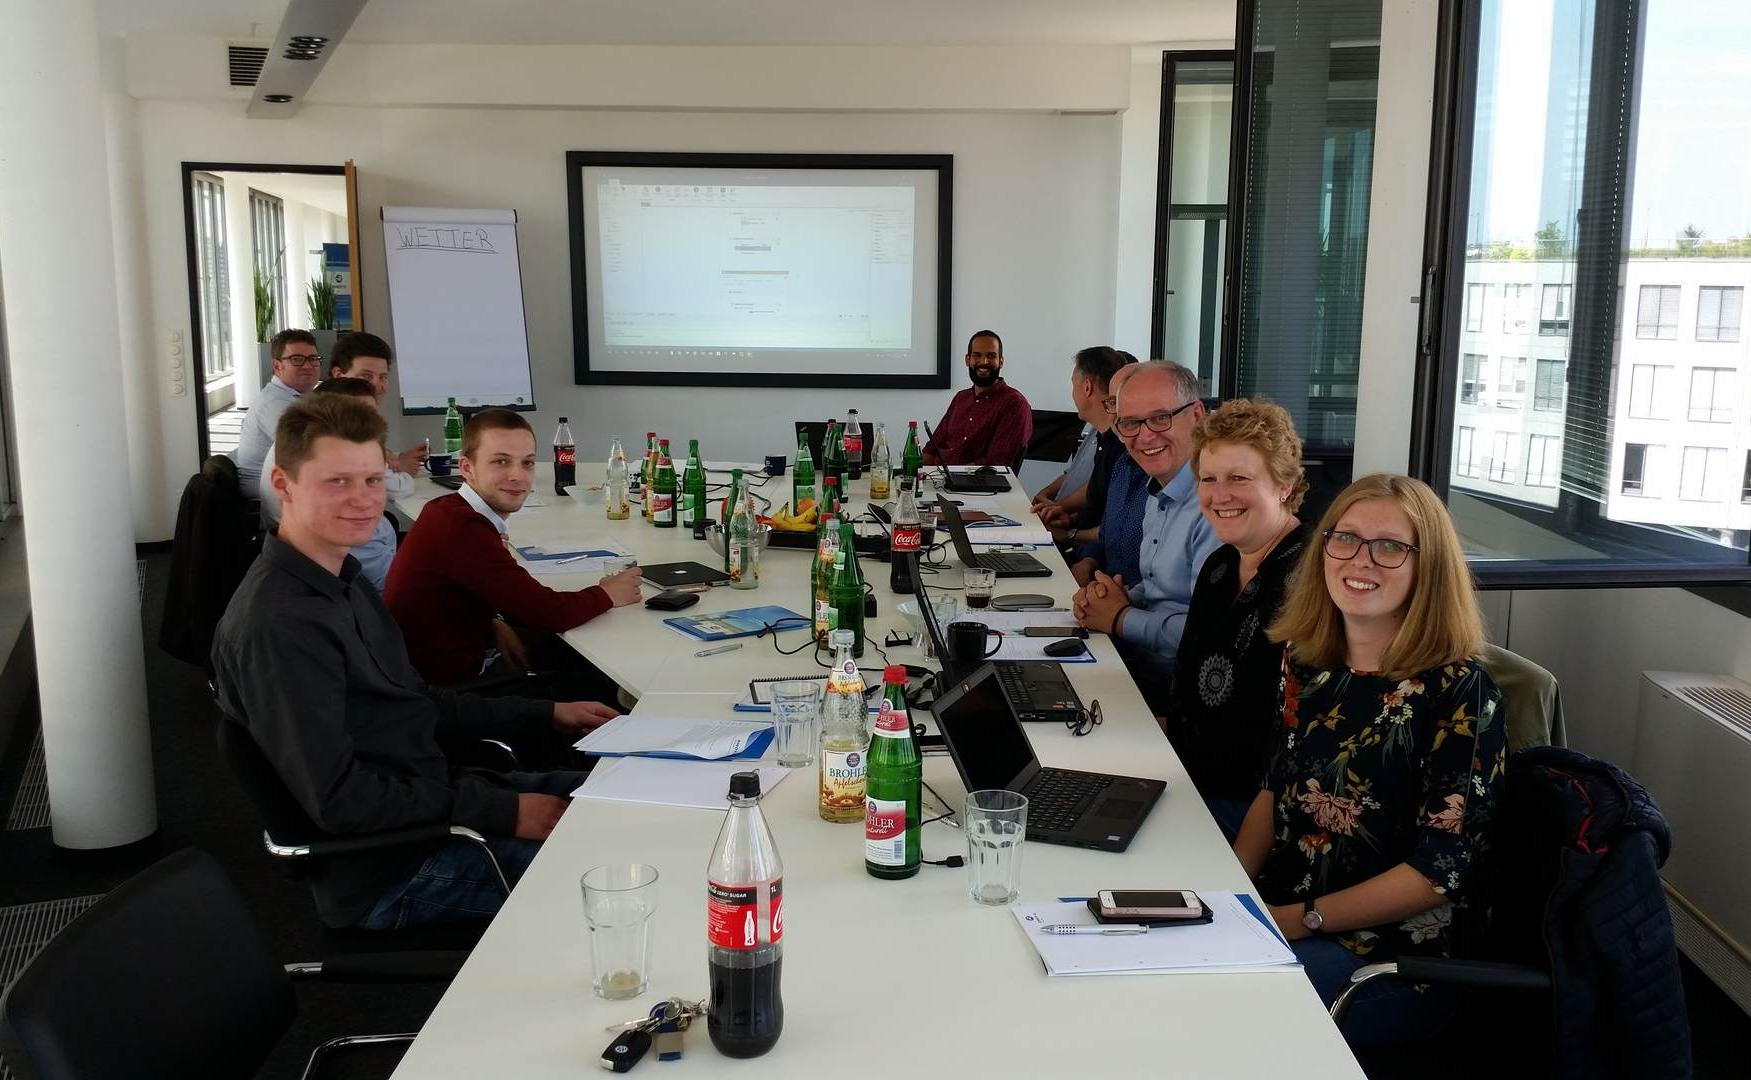 amotiq solutions RPA Schulung in Bonn